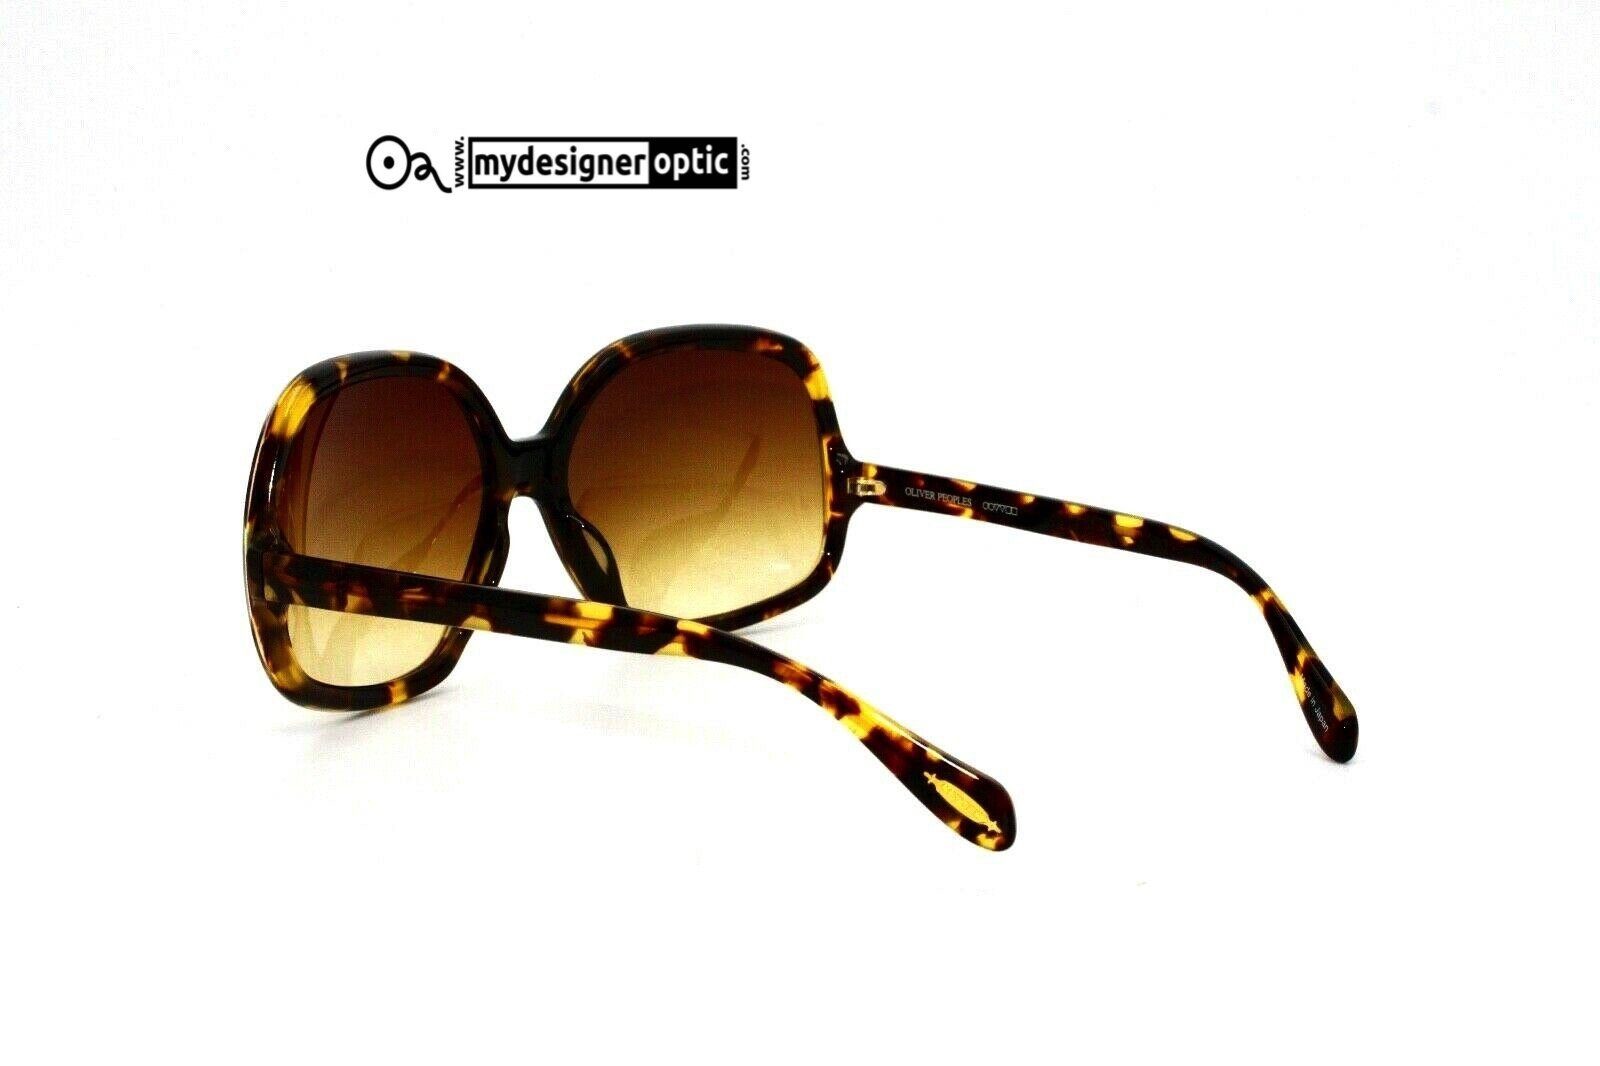 Oliver Peoples Sunglasses Tayla DTB 61-17-135 Made in Italy - Mydesigneroptic